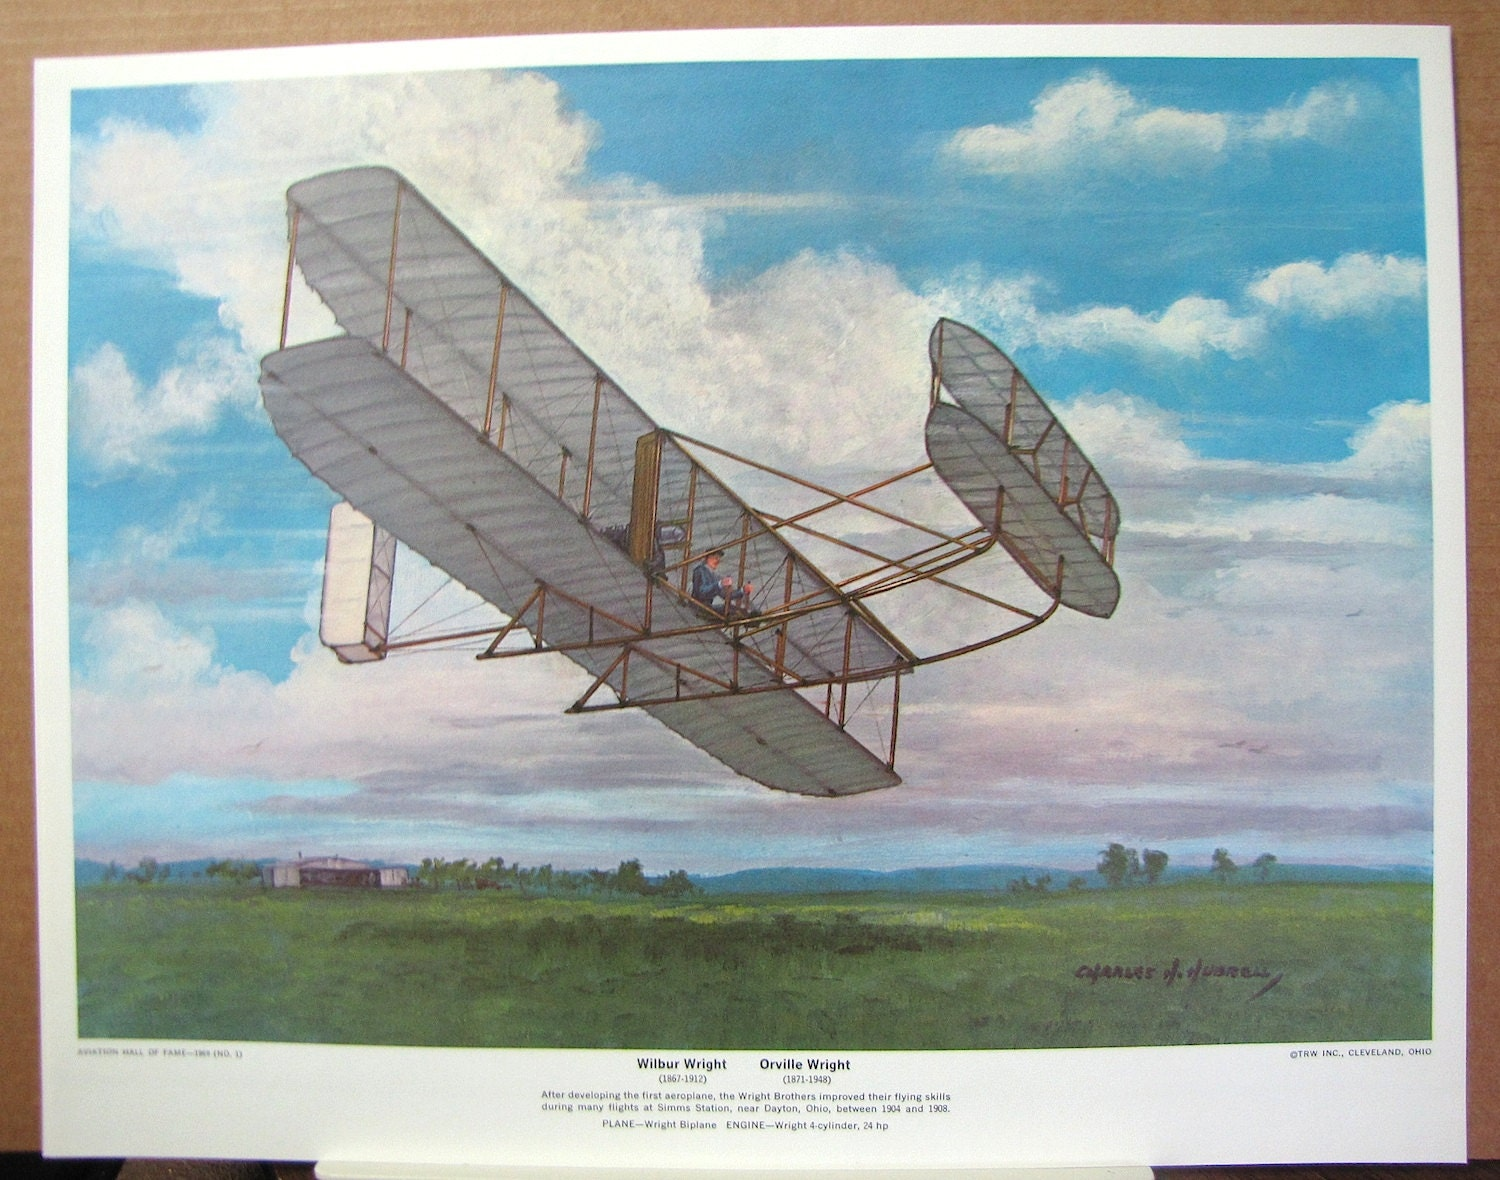 First Wright Brothers Flight with 1906 wright brothers biplane simms station ohio early flight